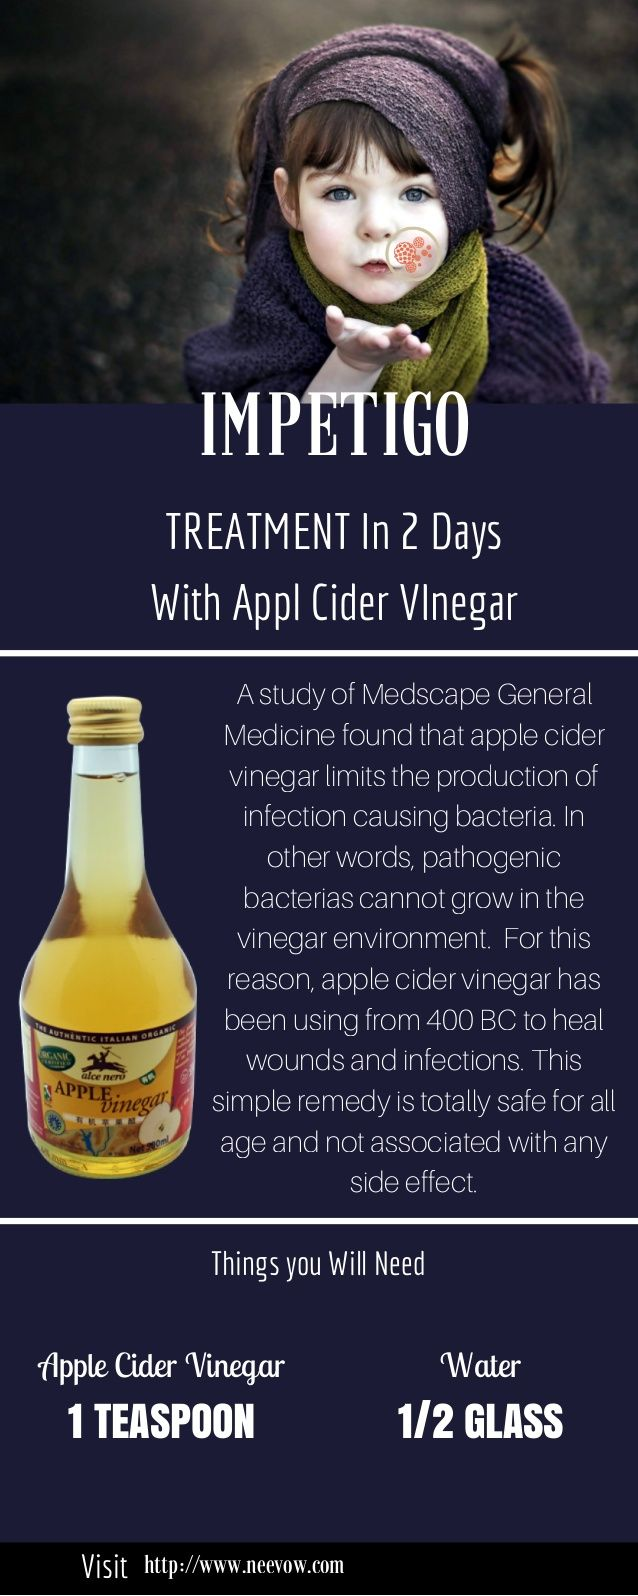 Ways to Naturally Cleanse Your Body & Home with Apple